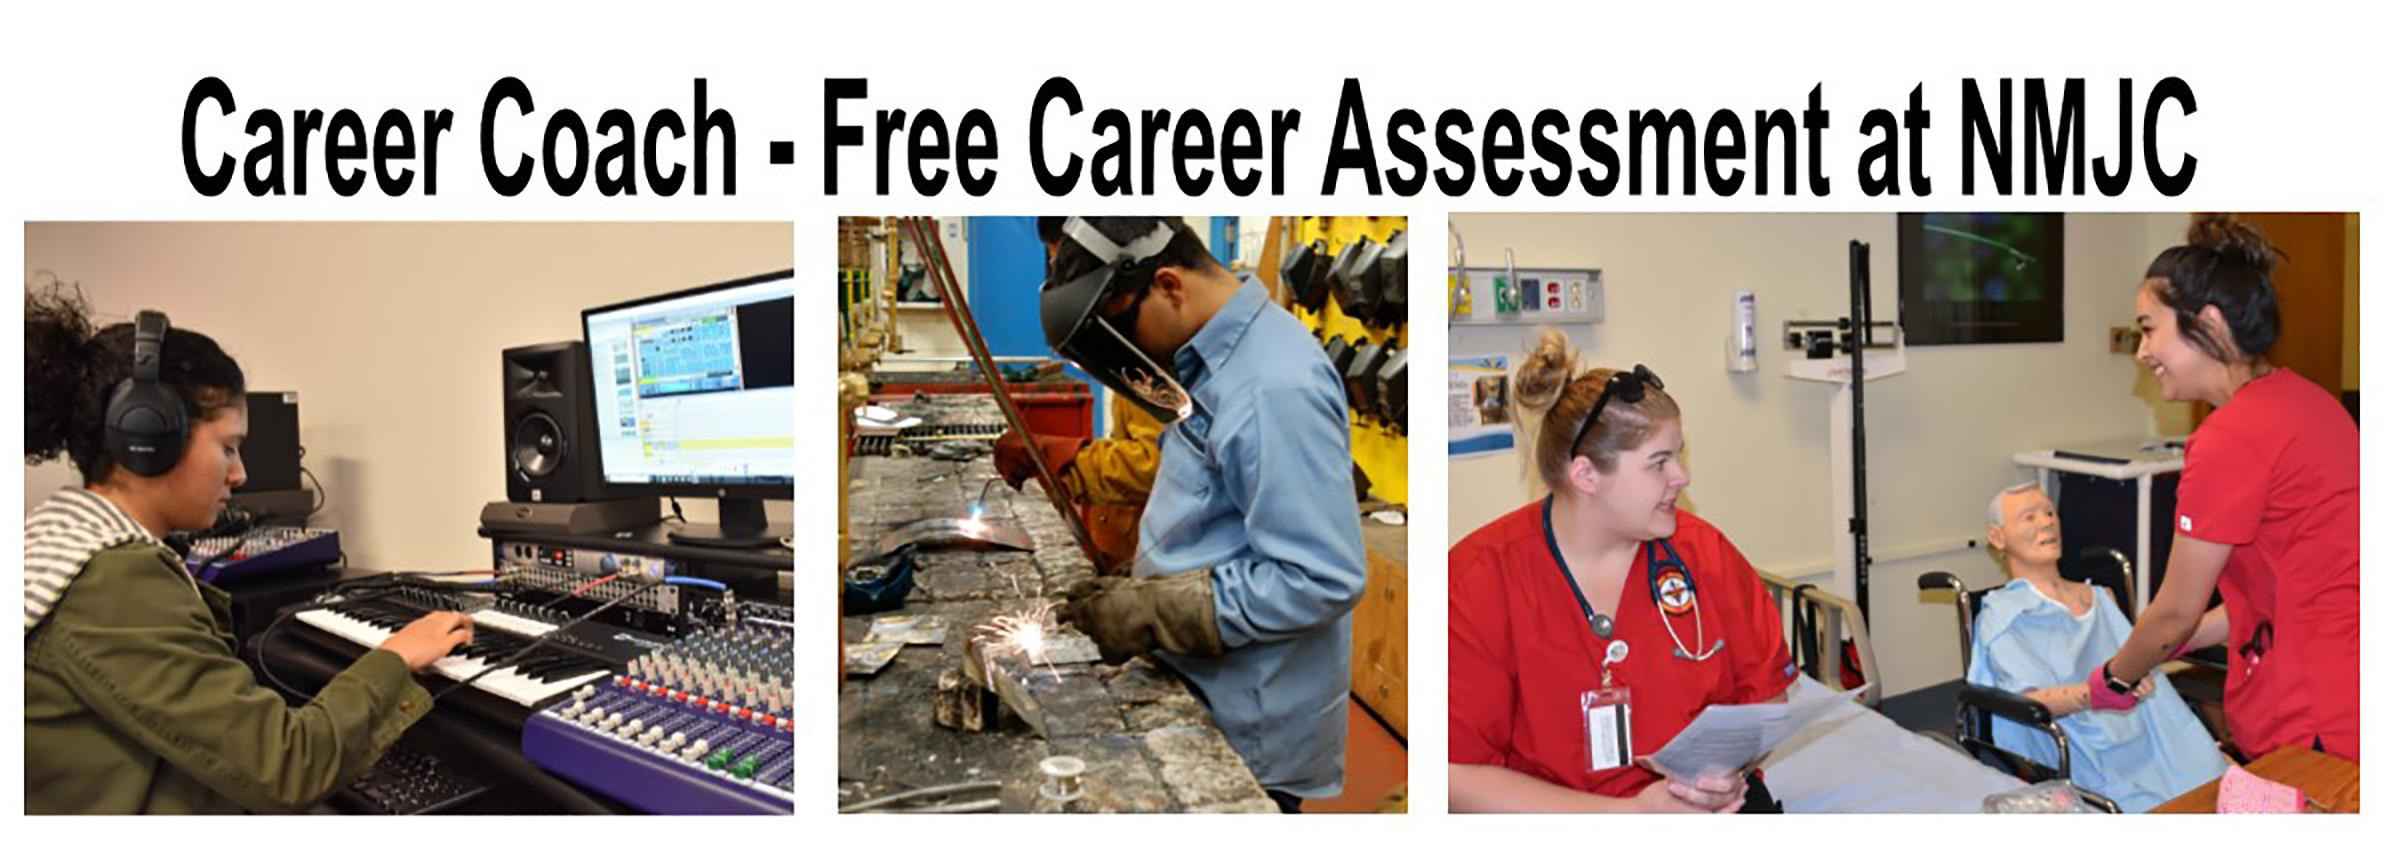 Get a Free Career Assessment